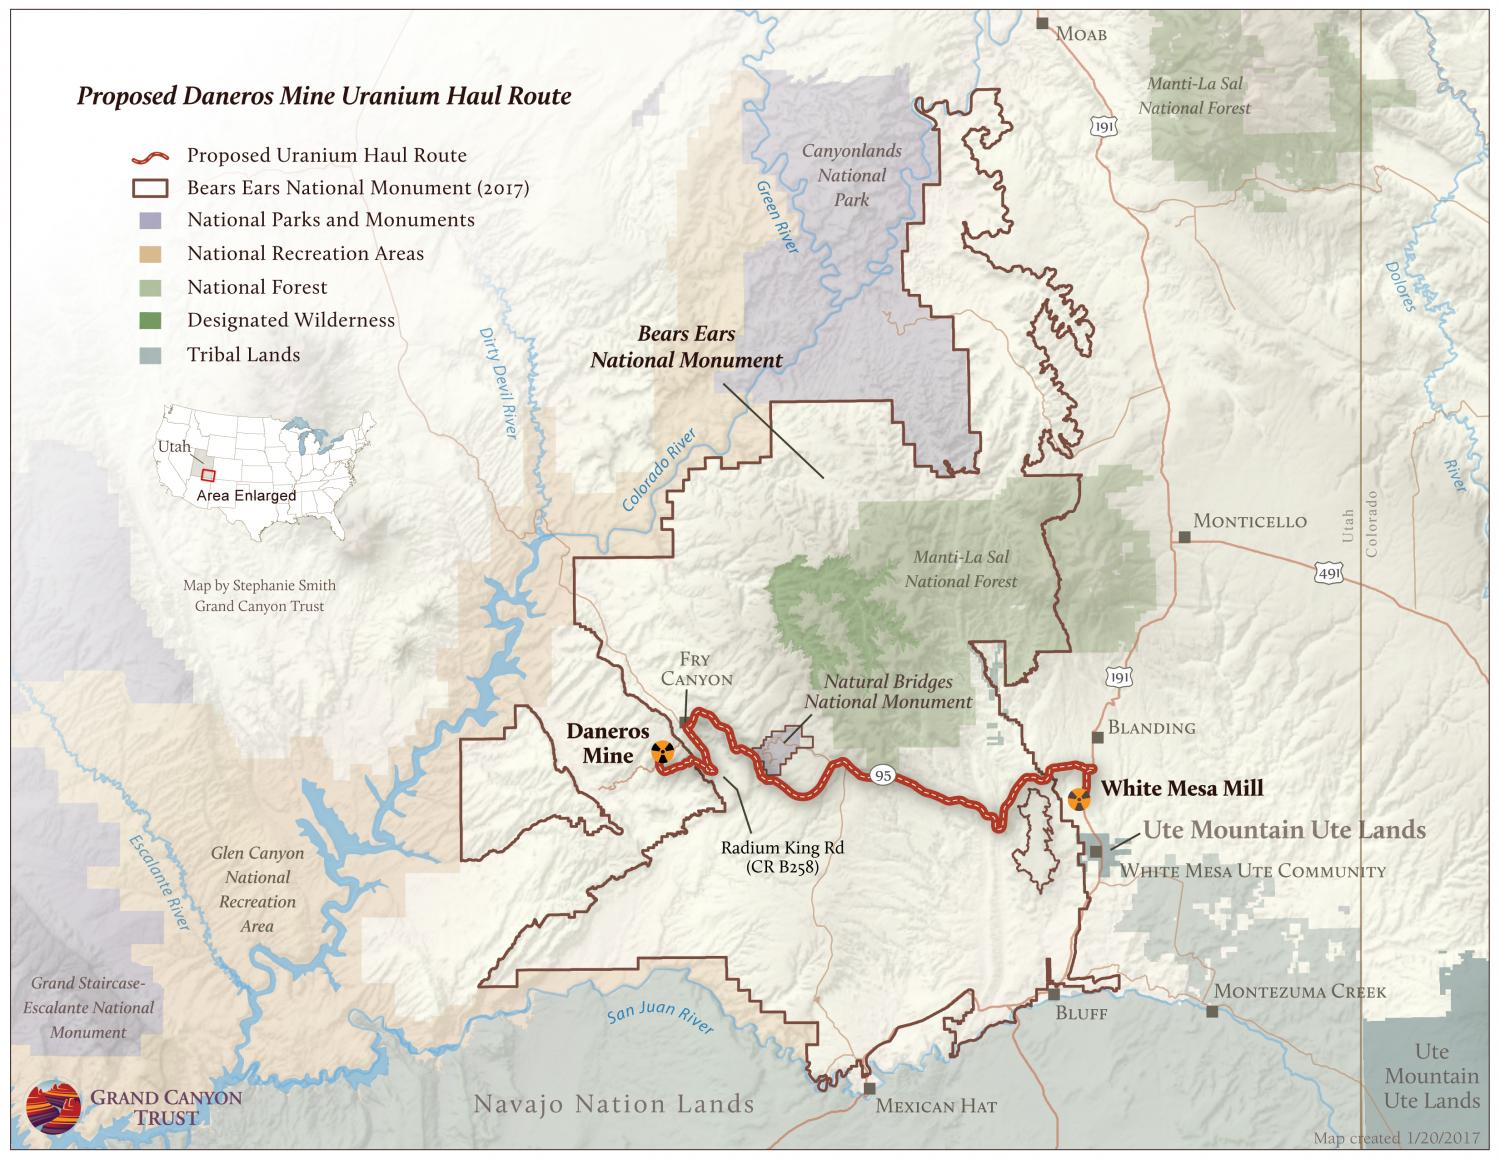 Proposed uranium haul route from Daneros Mine to White Mesa Mill.